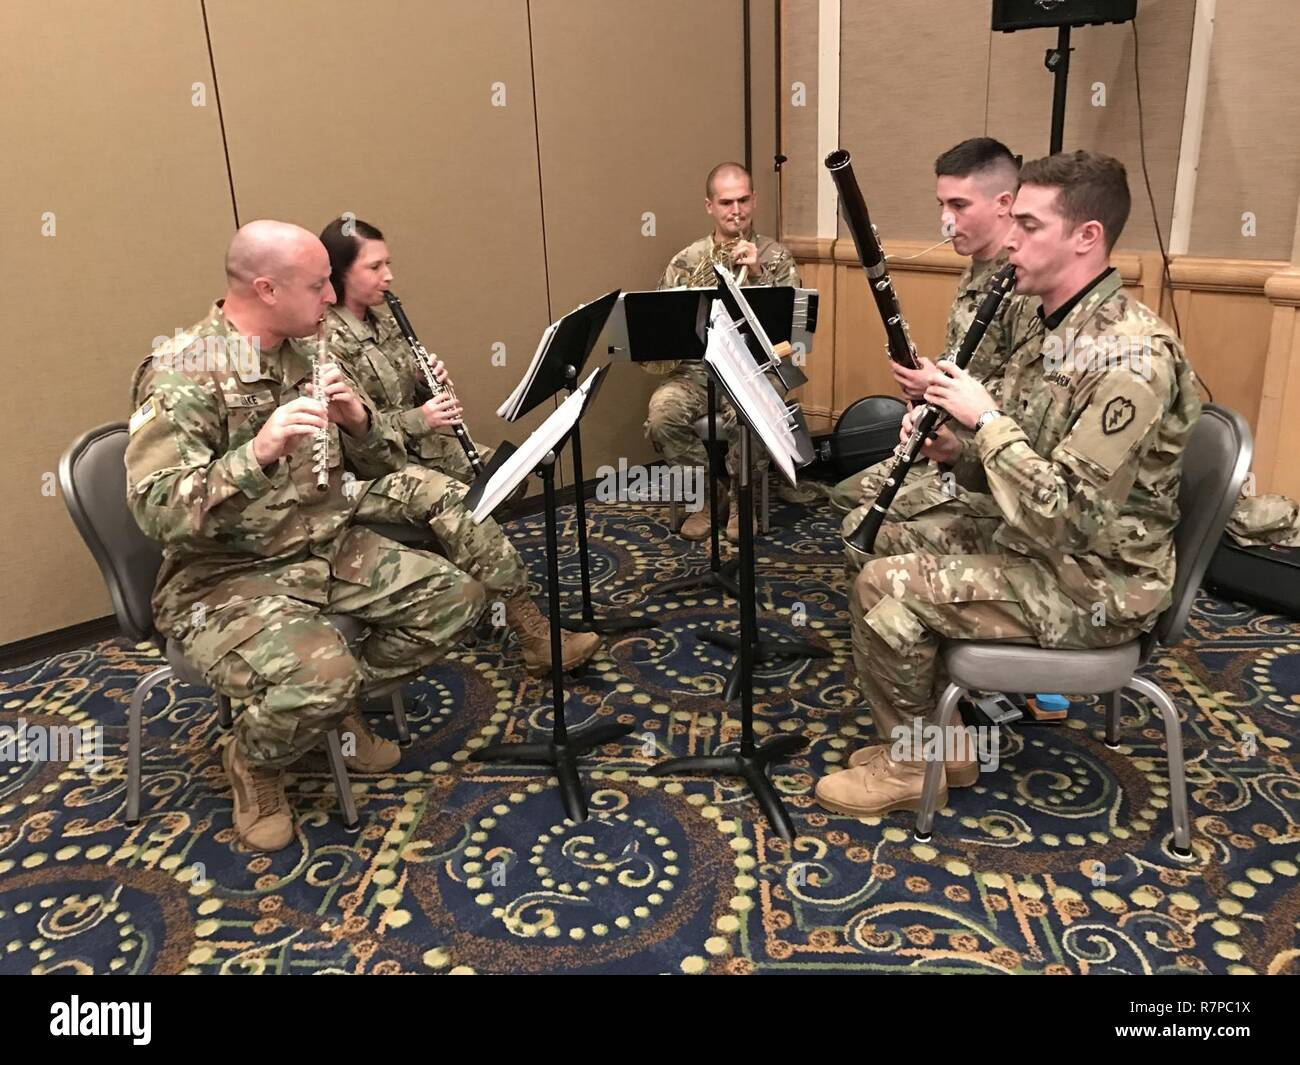 Soldiers from the 25th Infantry Division band play for